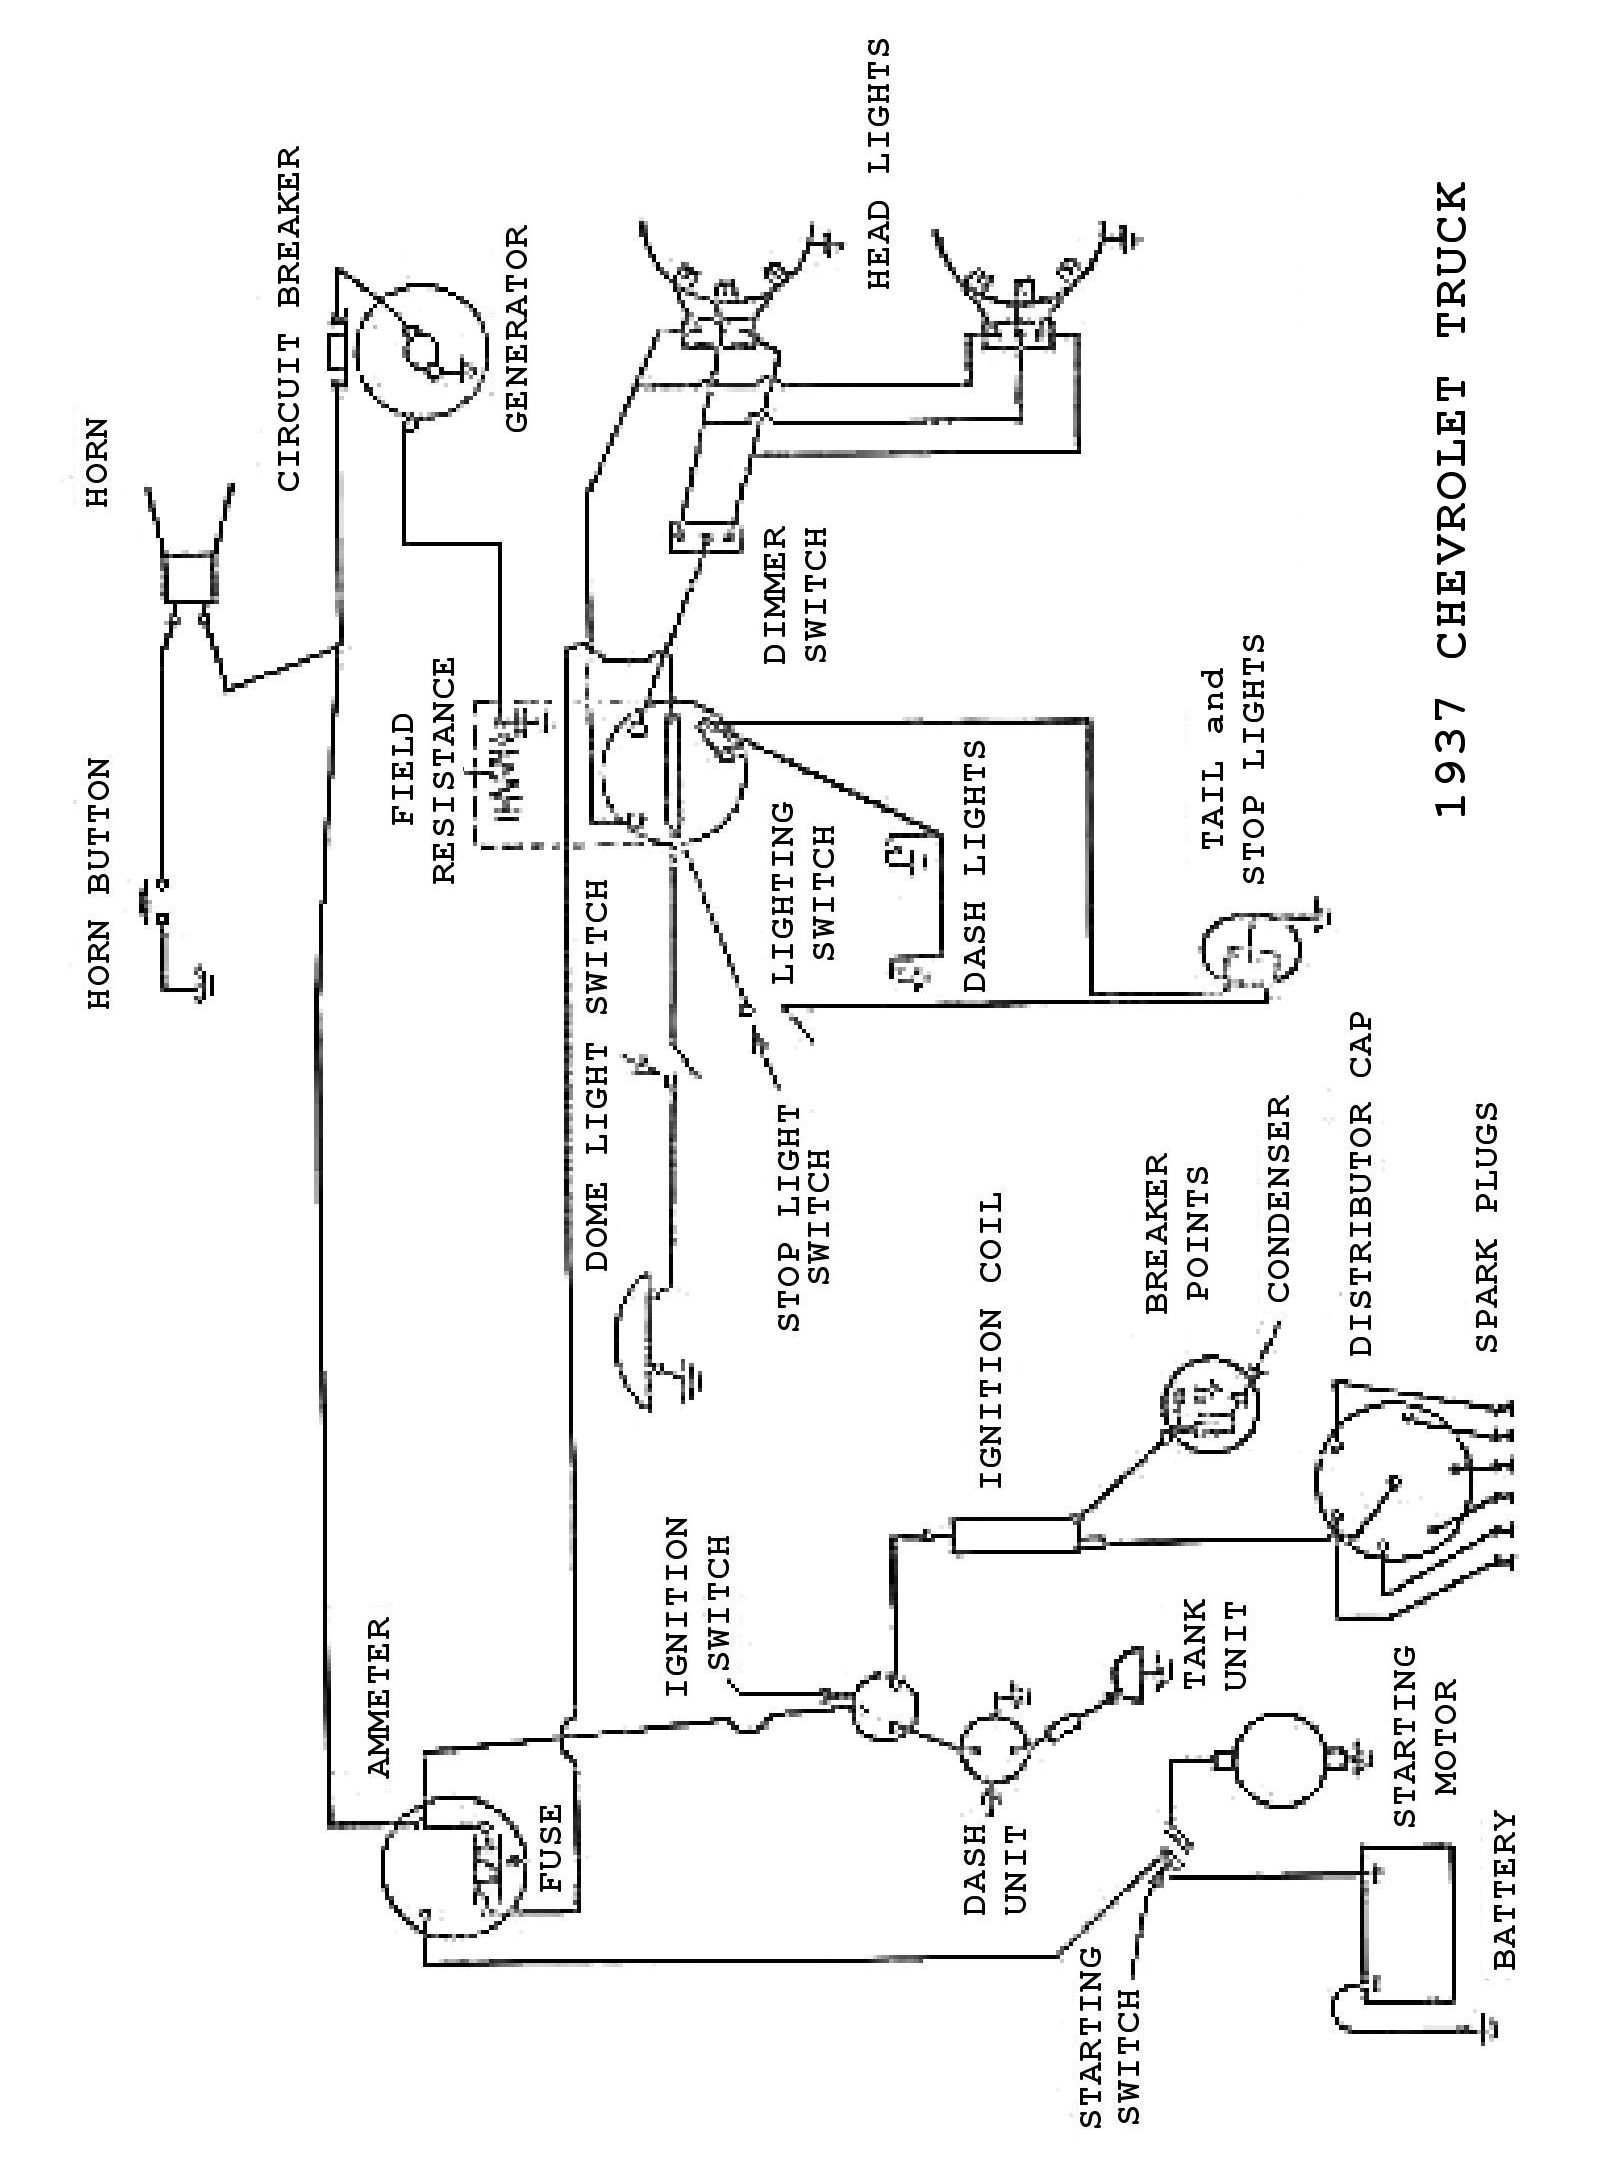 spark plug wire diagram 350 chevy